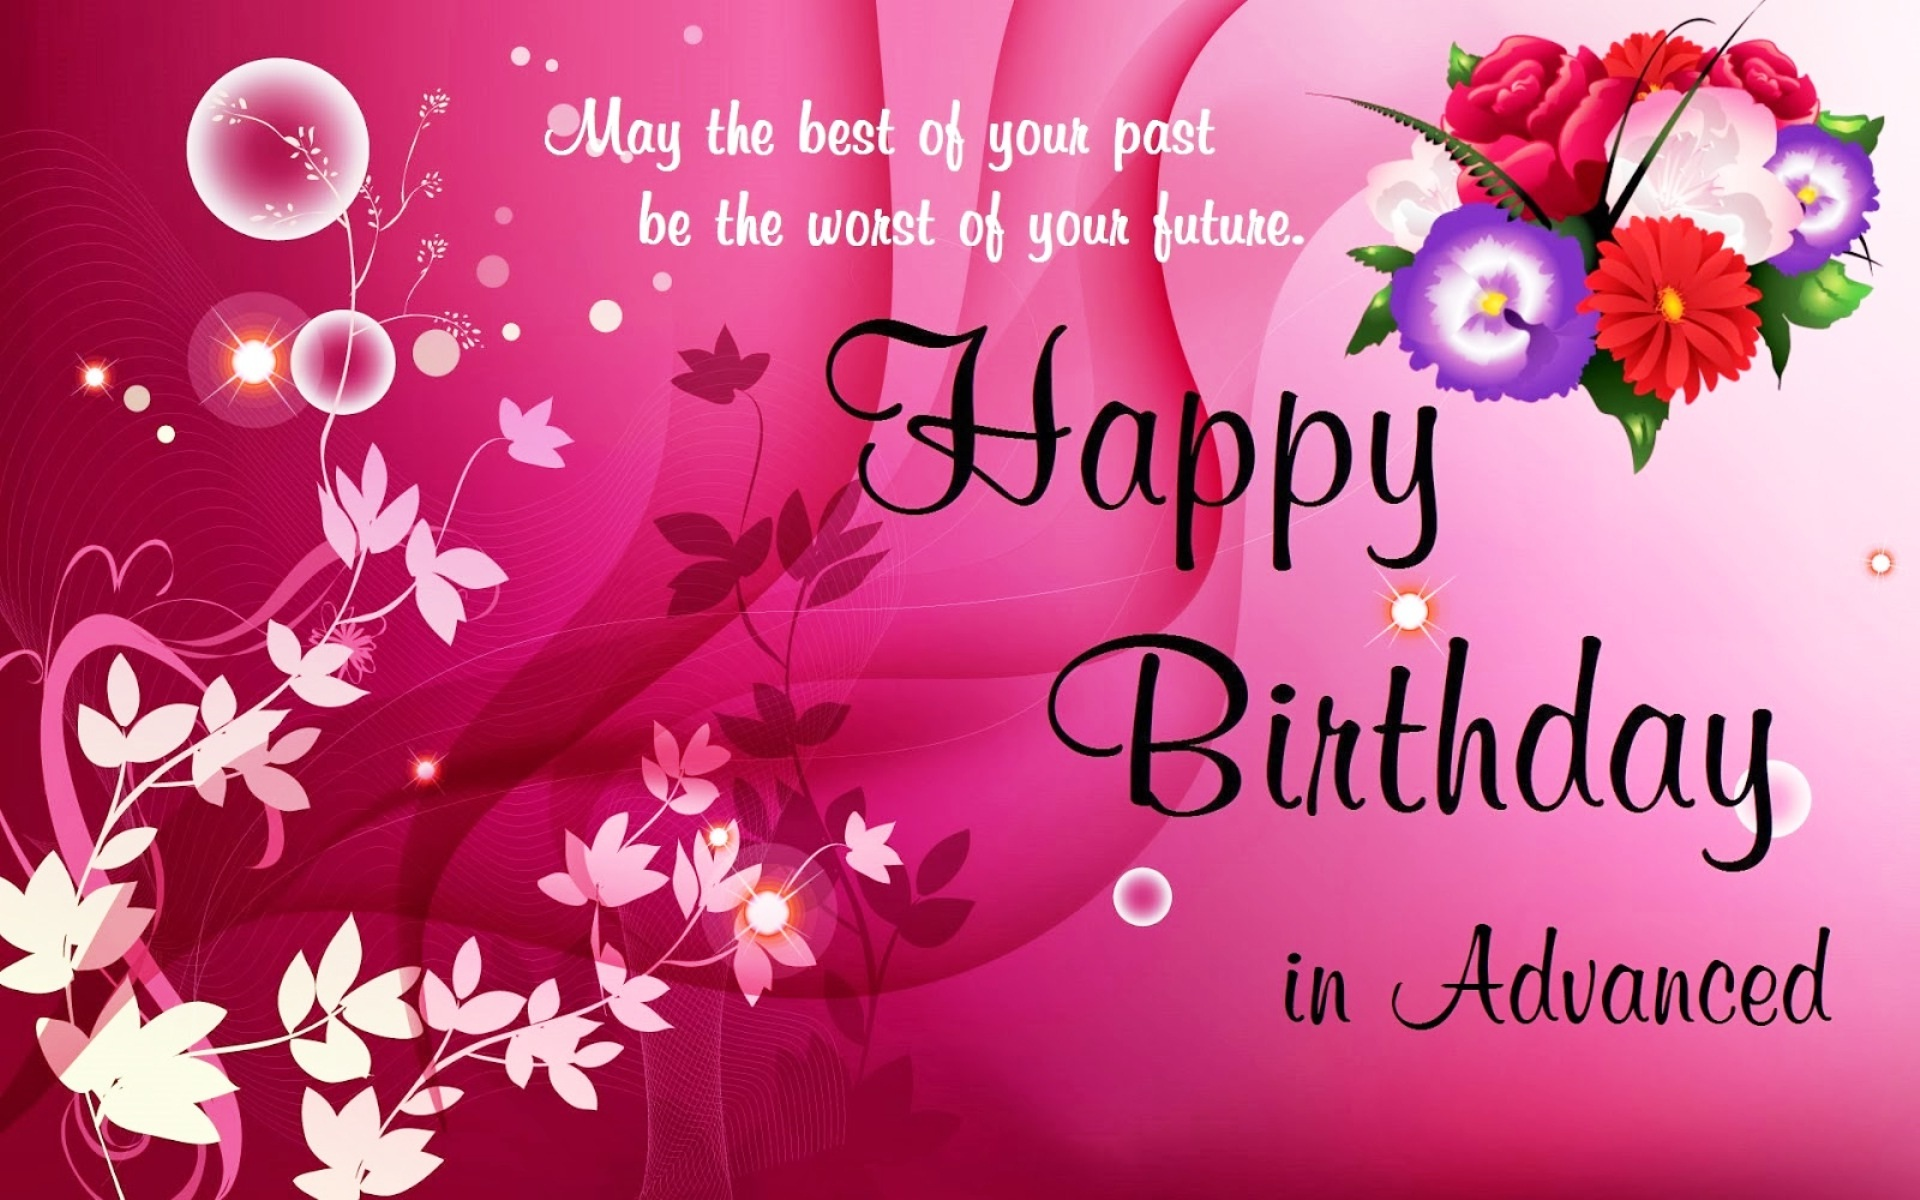 birthday wishes background images ; advance-happy-birthday-wishes-wallpapers-and-backgrounds